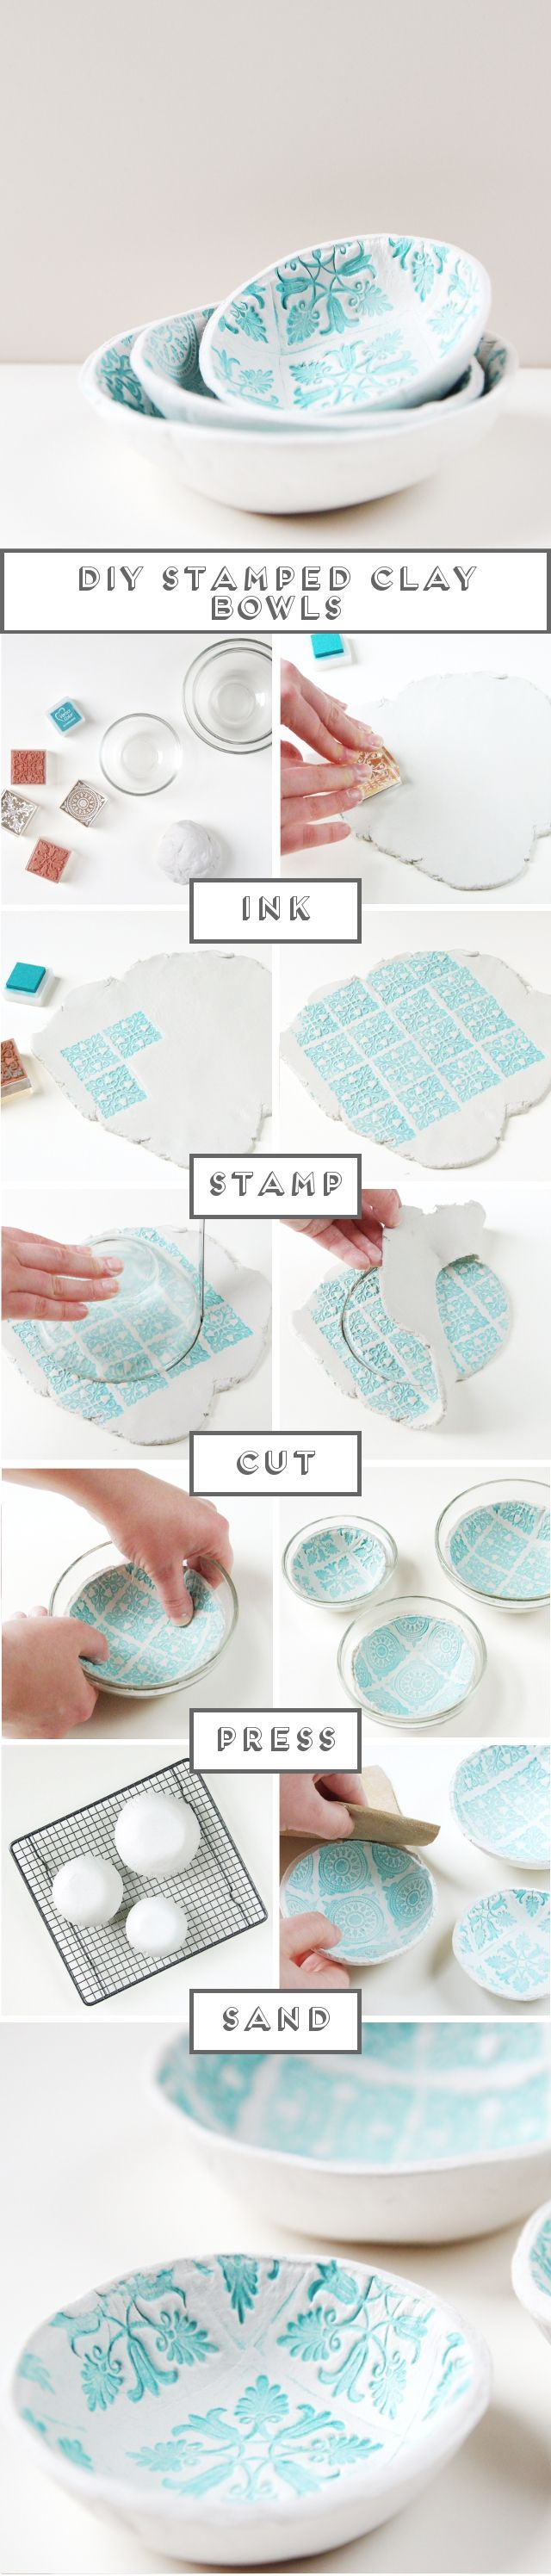 Make your own Diy Stamped Clay Bowls using these easy steps.